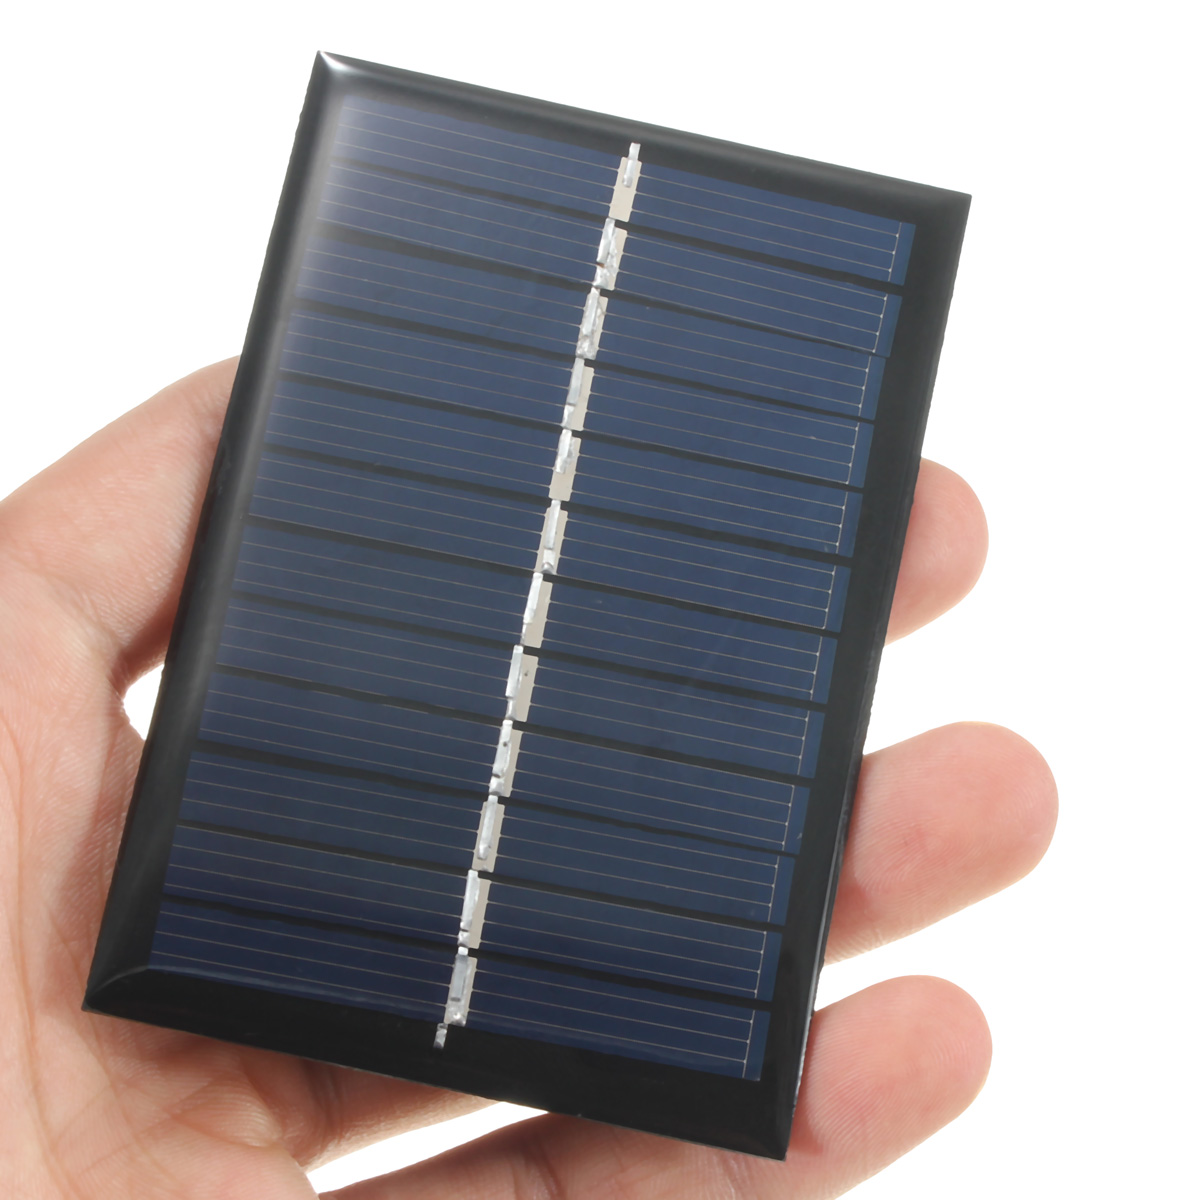 CLAITE Solar Battery Charger 6V 1.1W 0.6W Solar Panel Kit DIY 3.7V Battery Charger Module Epoxy PV Polycrystalline Cells